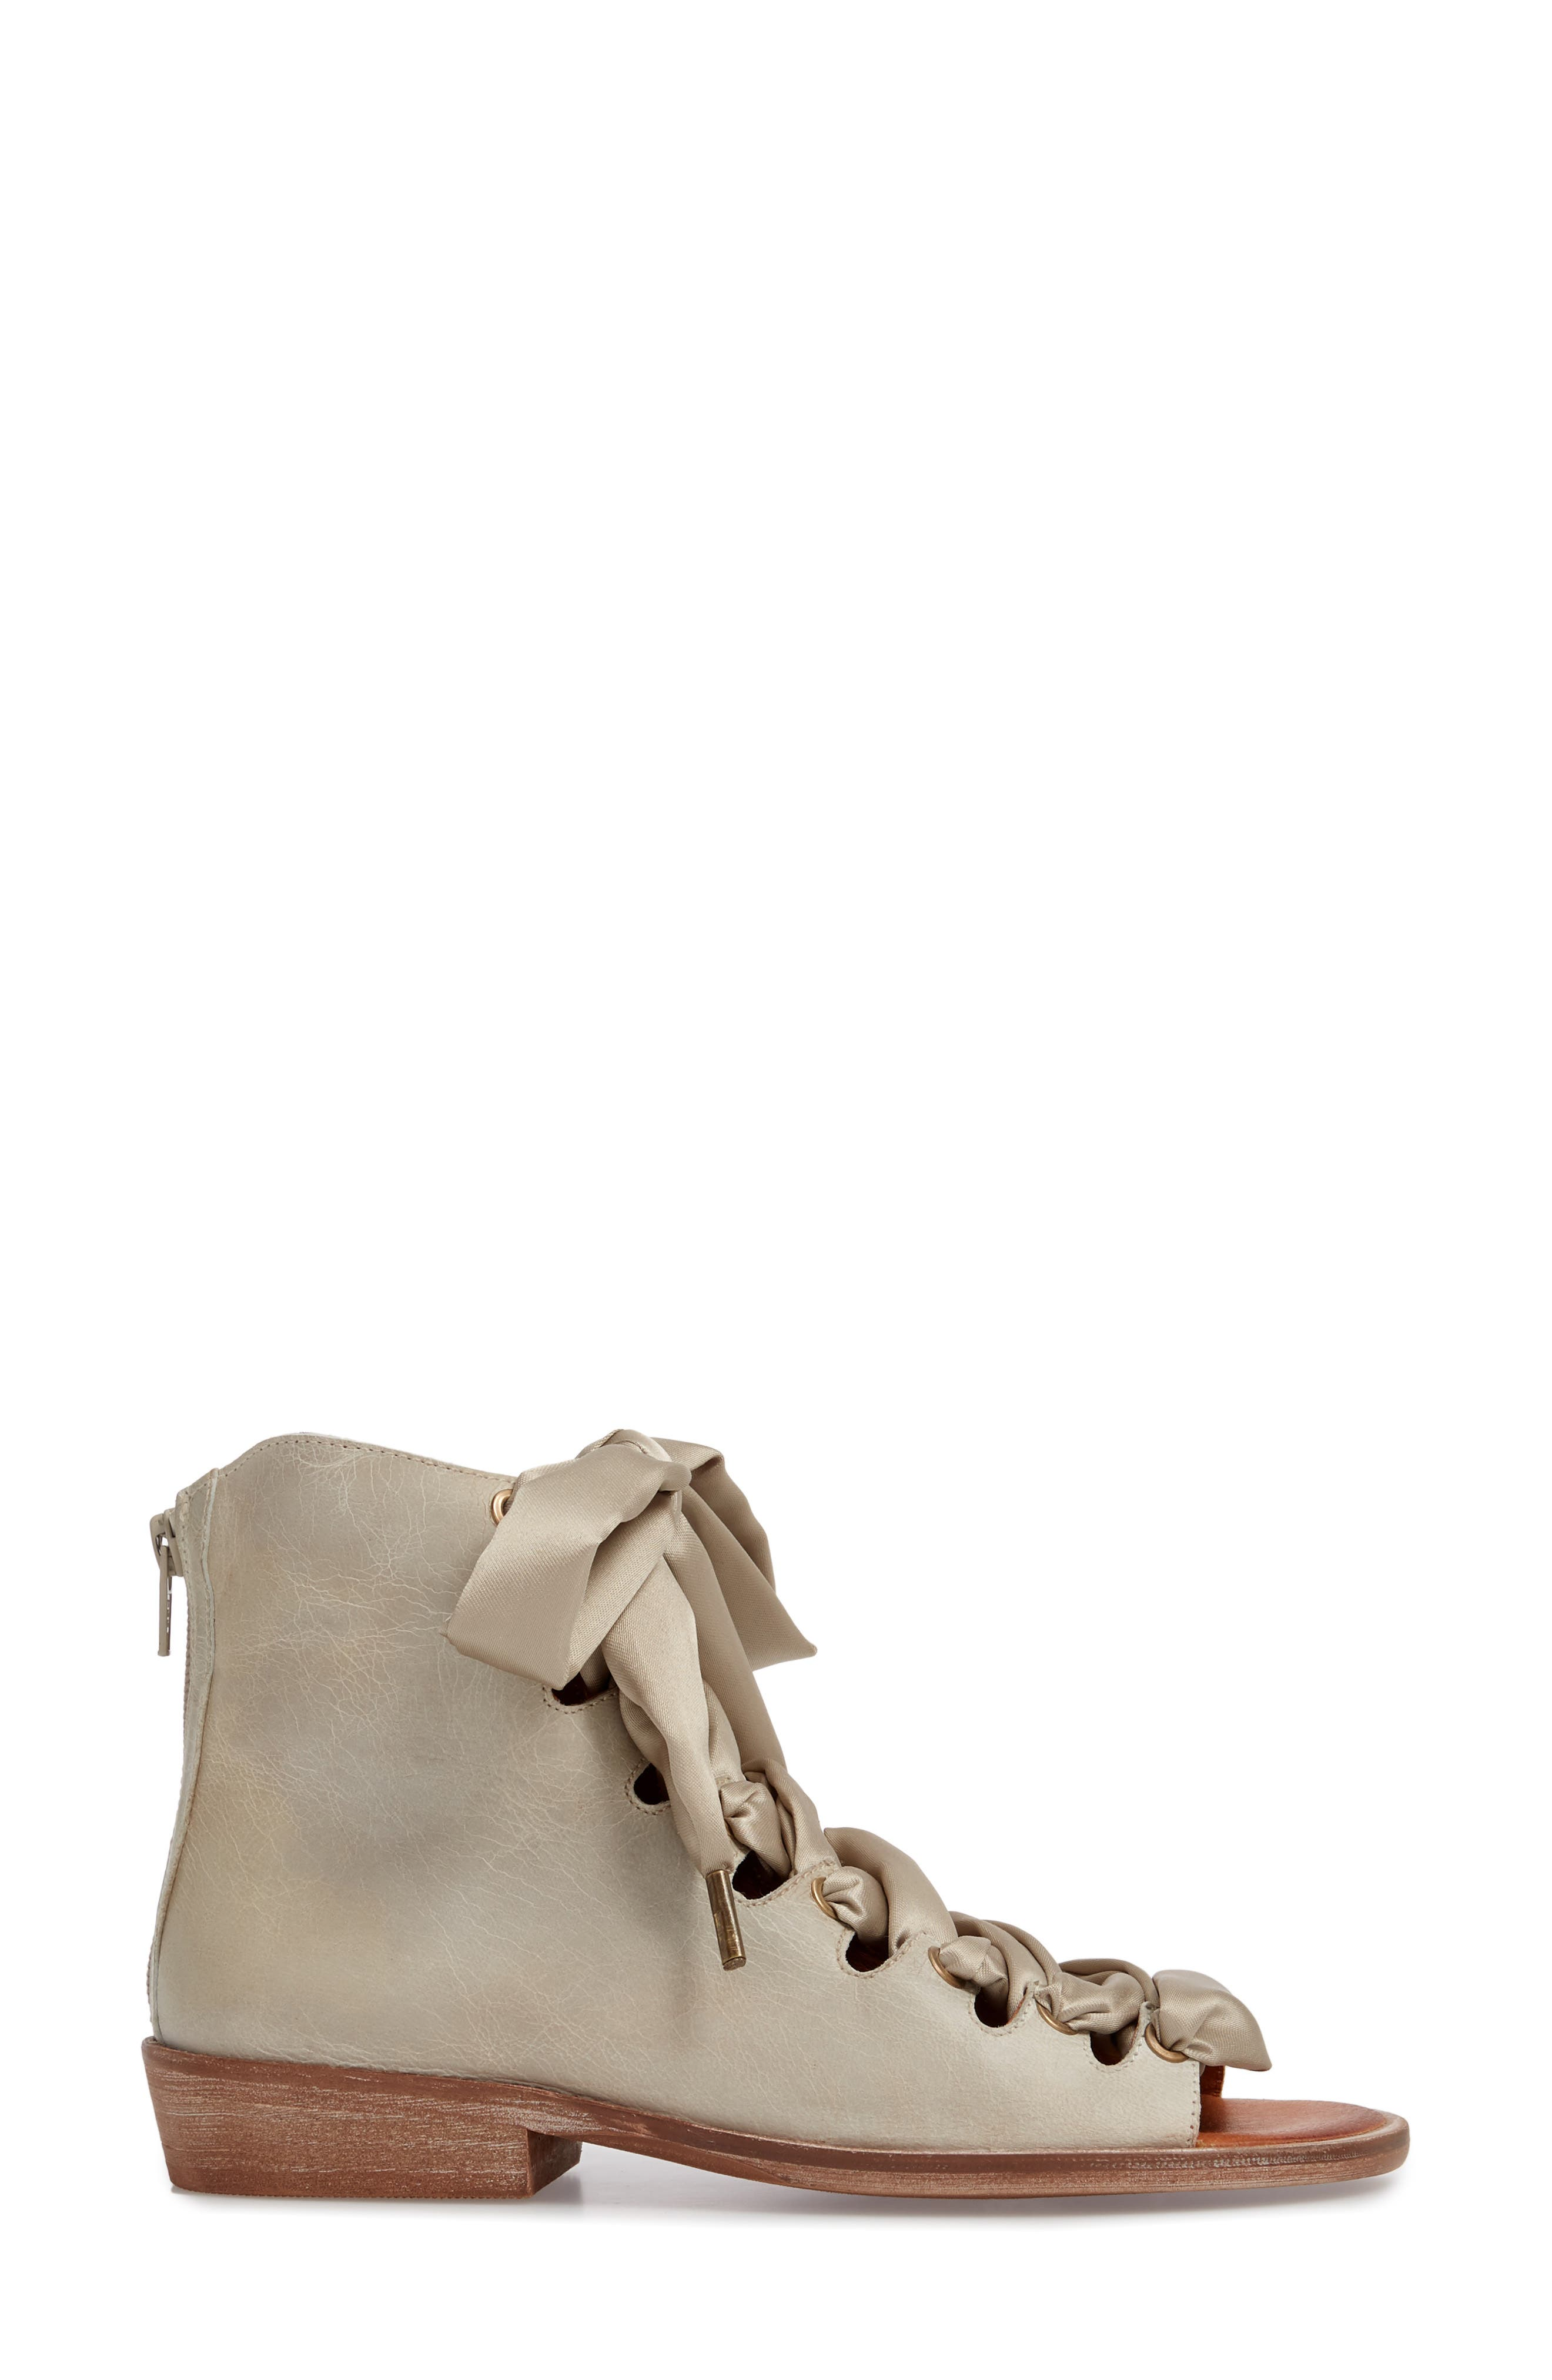 Alternate Image 3  - Free People Palms Lace-Up Bootie Sandal (Women)